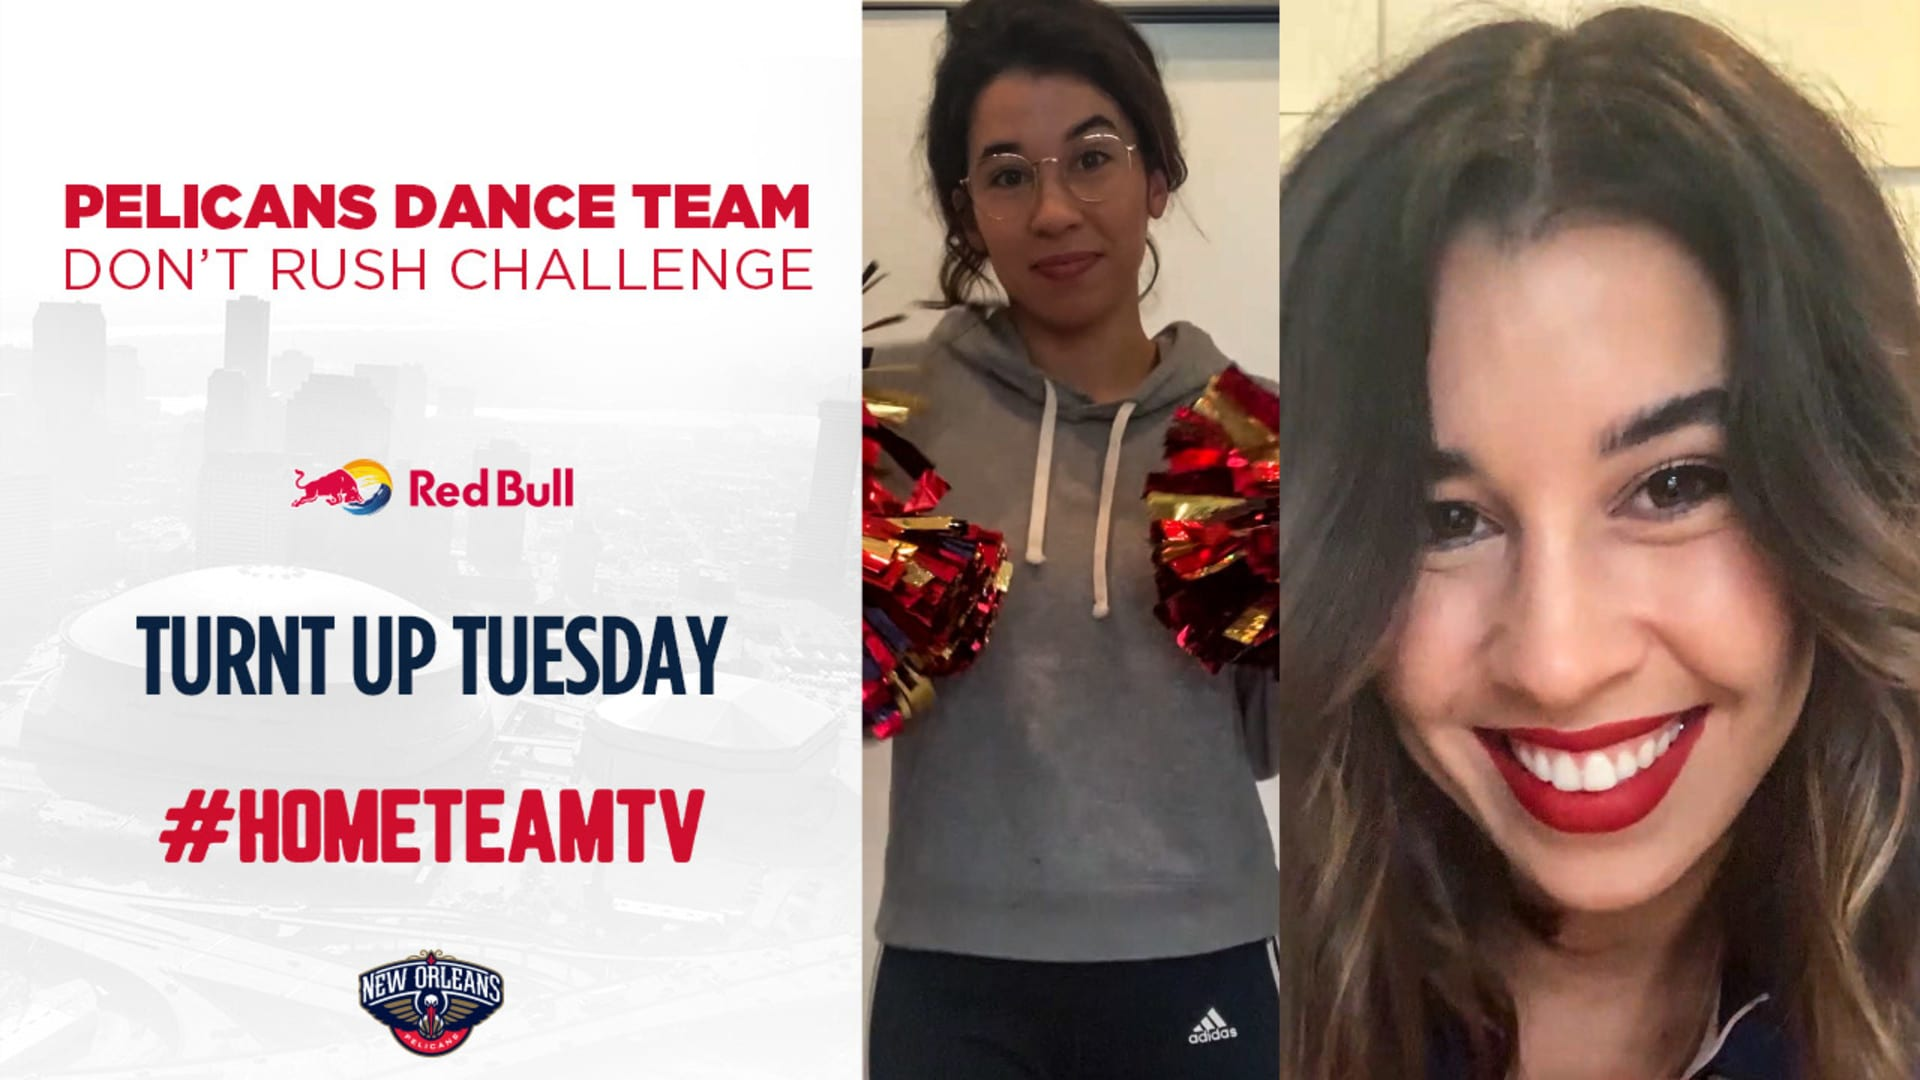 HomeTeamTV: Pelicans Dance Team does the Don't Rush Challenge on Turnt Up Tuesday 4/14/20